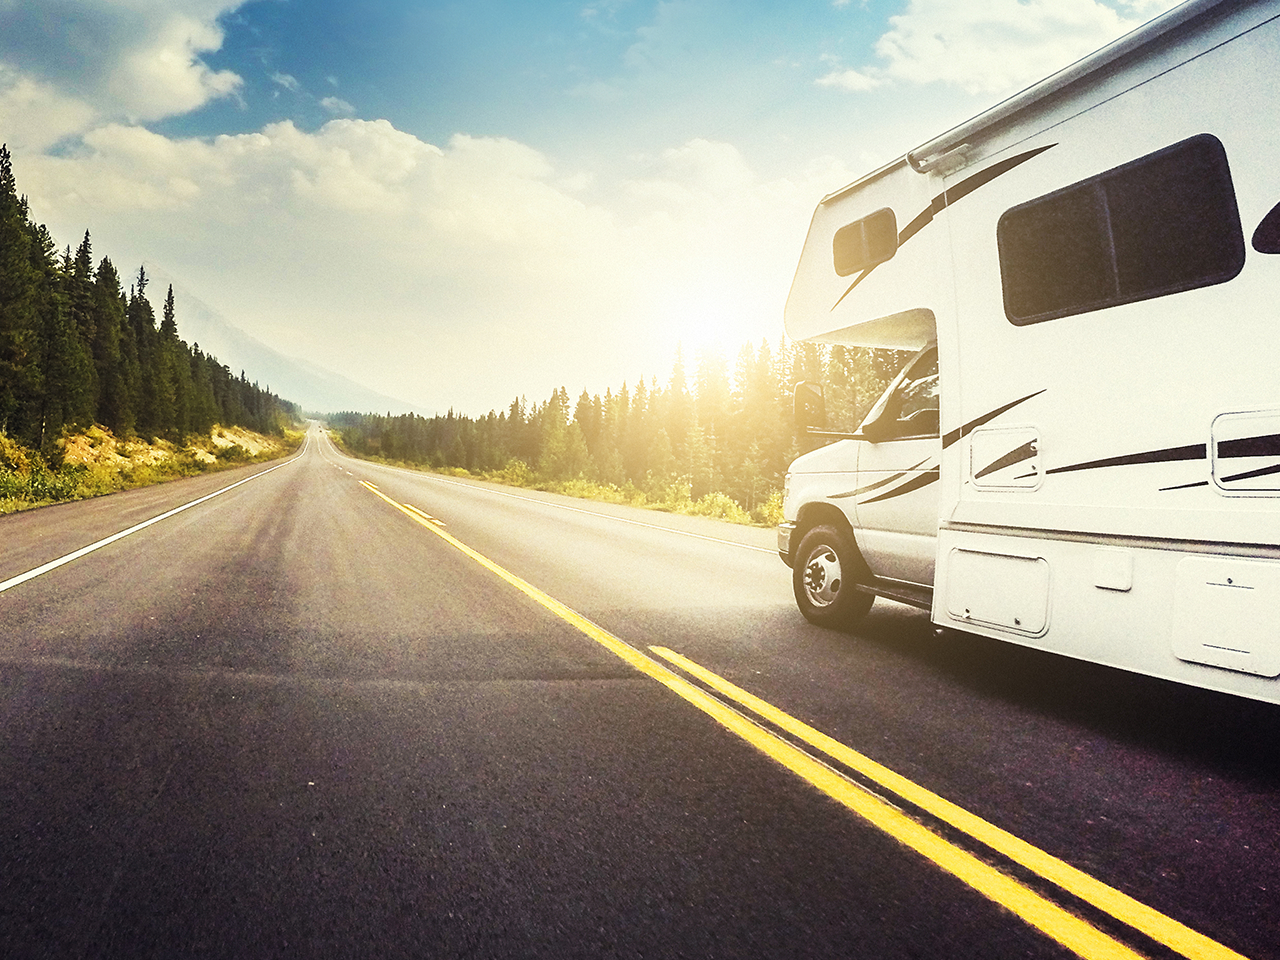 2019 Fleet RV Promotion on OneWeb.